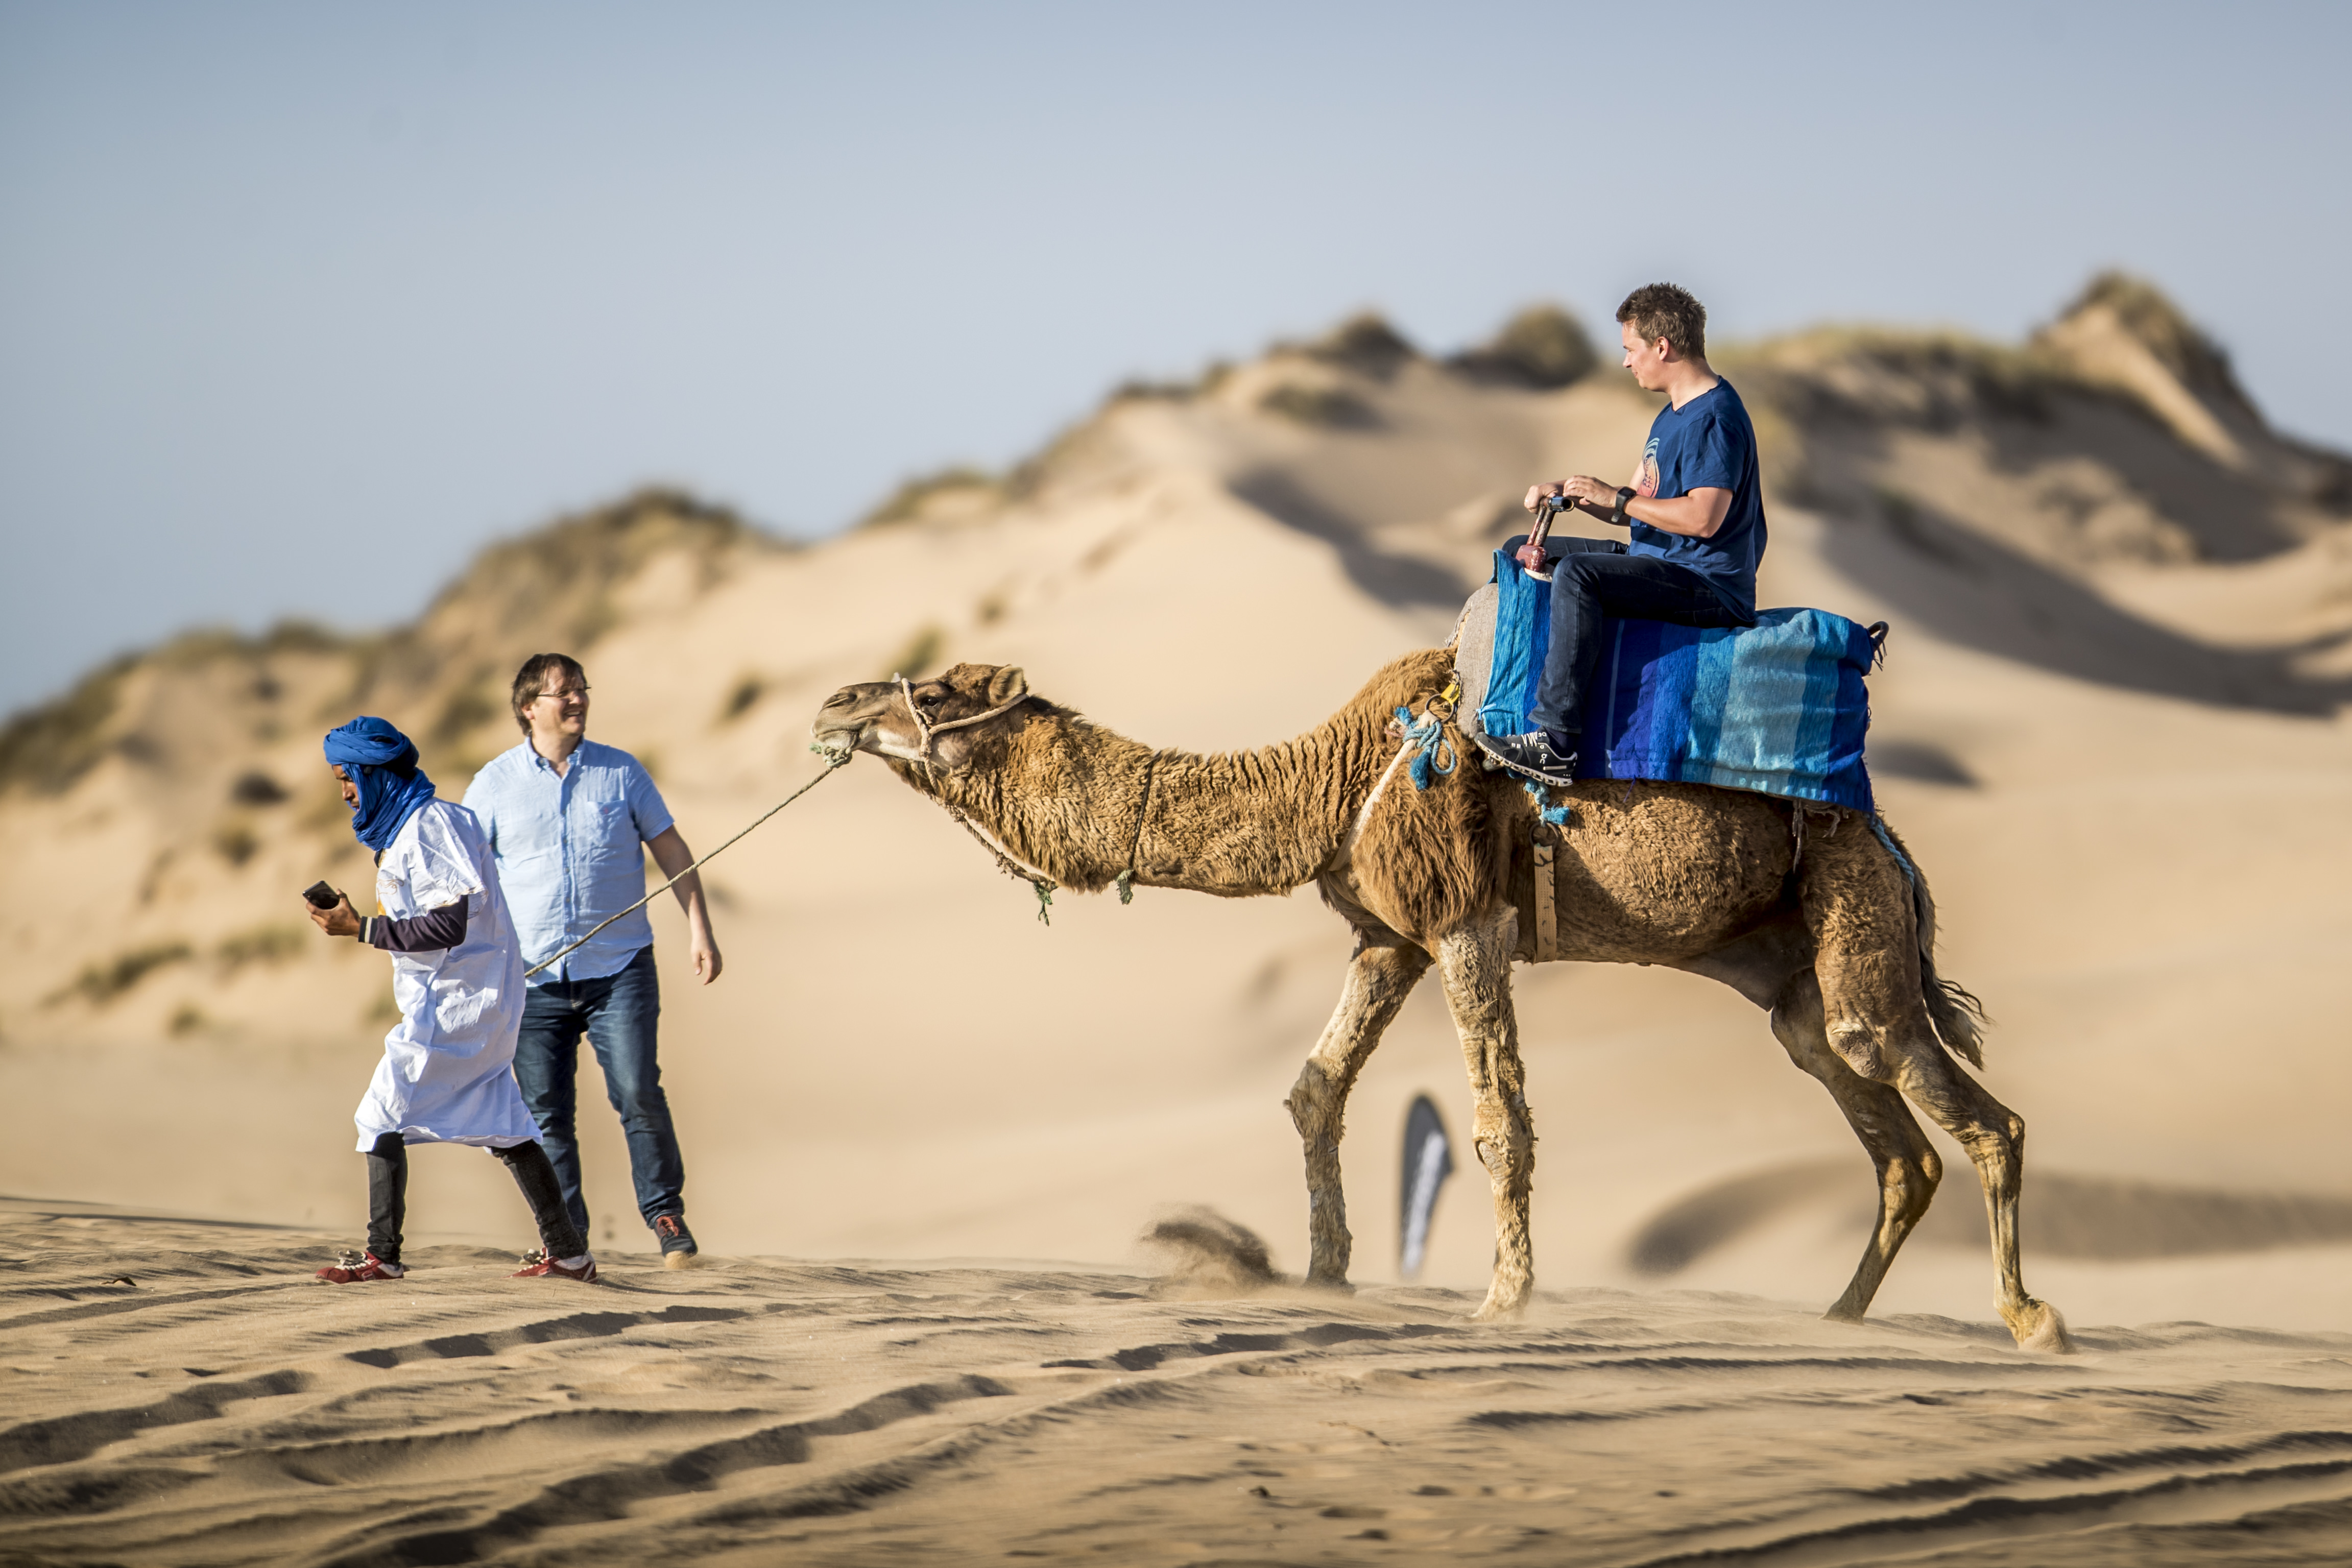 One day on a dromedary with overnight stay in a Berber tent